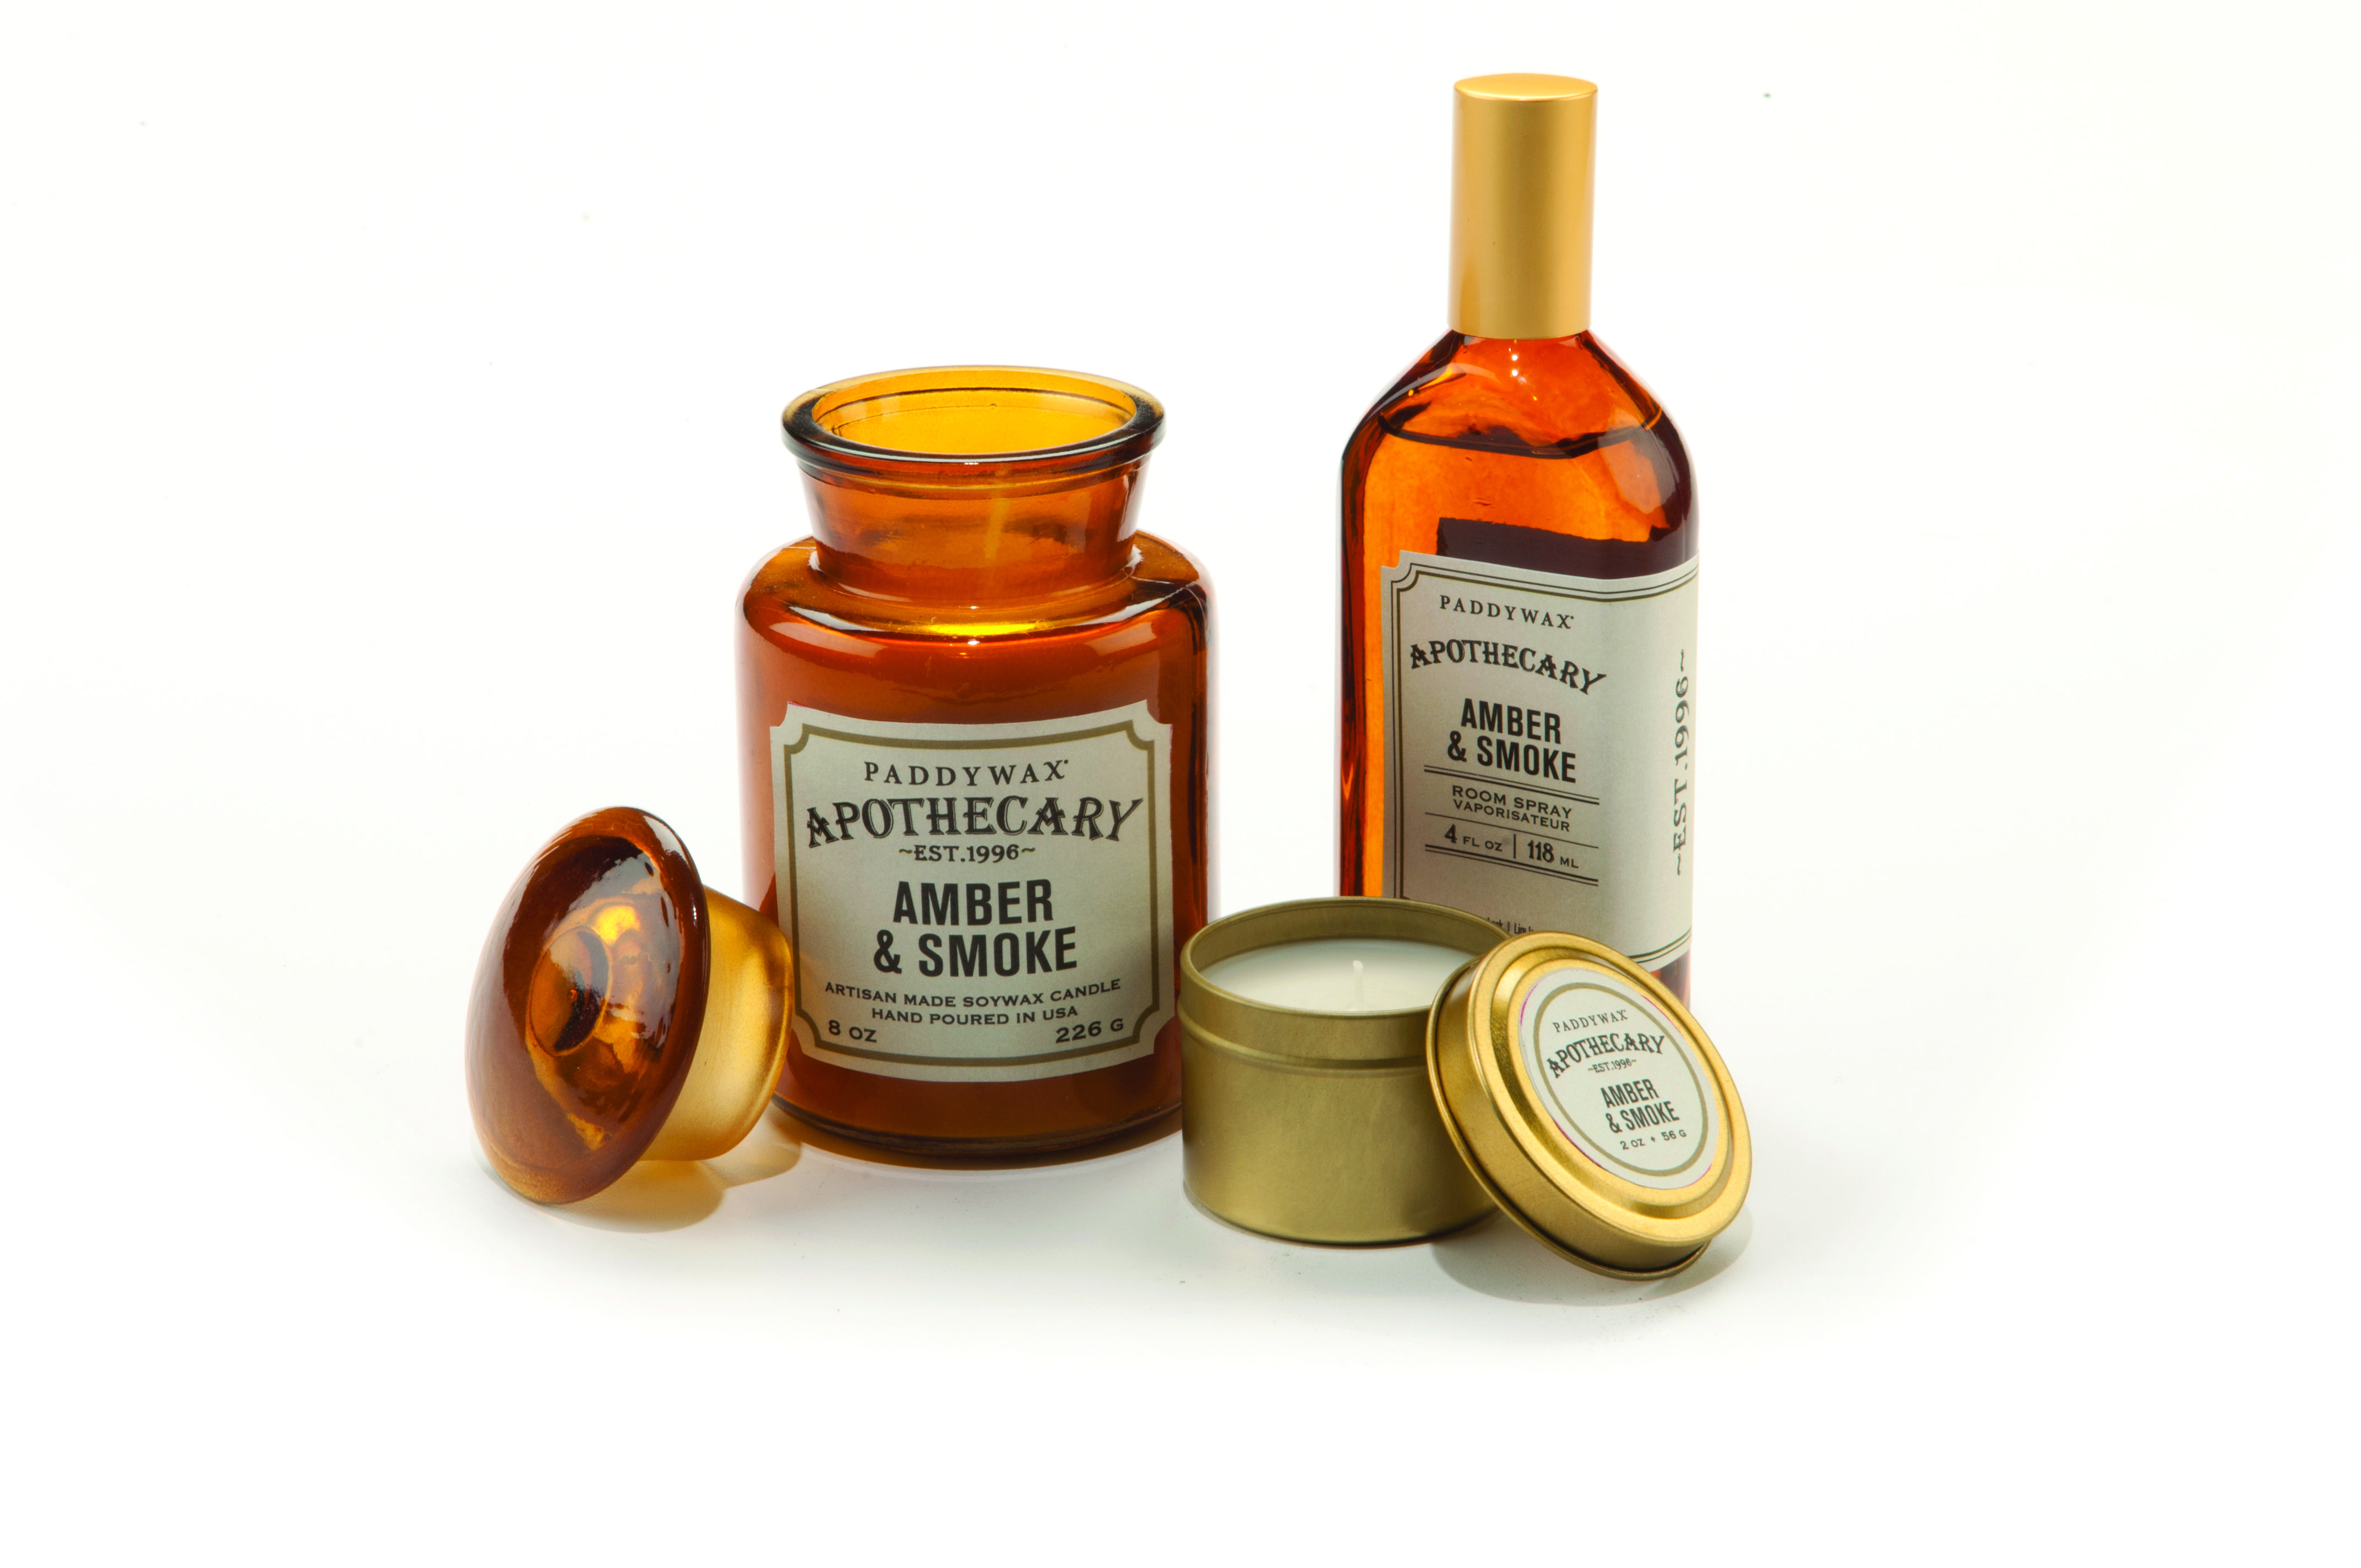 Paddywax Apothecary Amber and Smoke Candle. Available from: http://www.rooi.com/product/paddywax-apothecary-candle